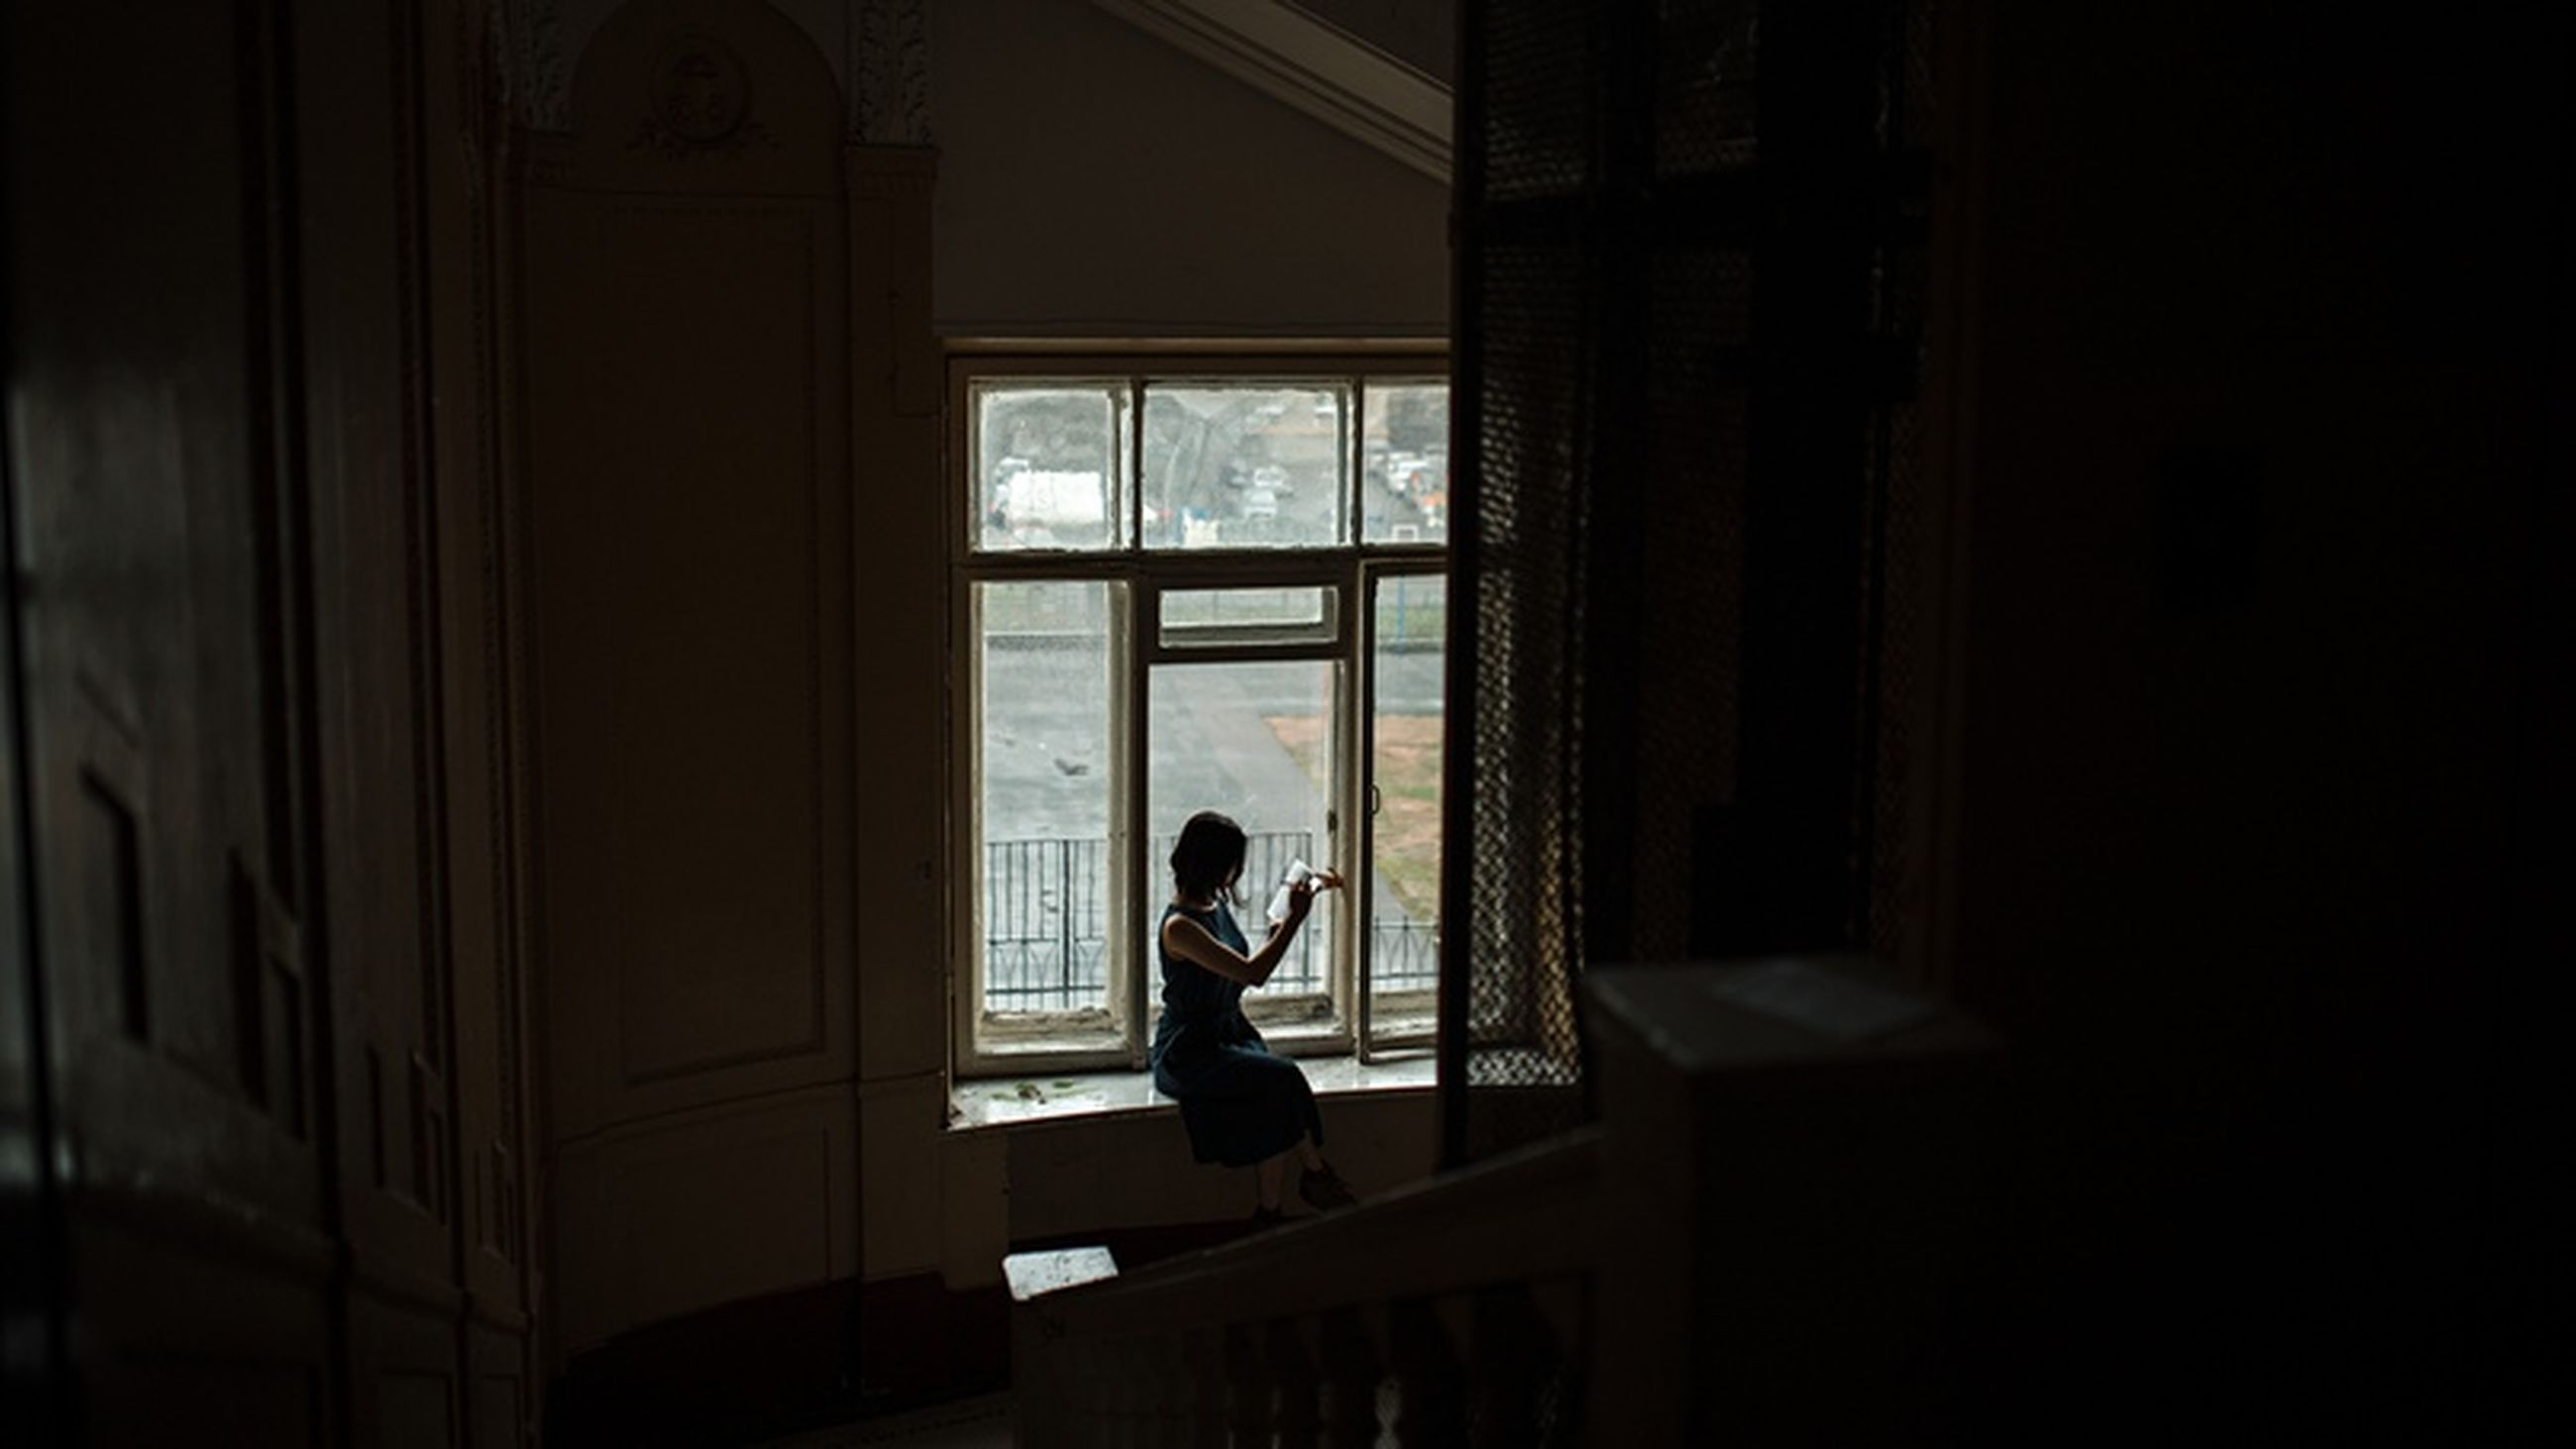 window, one person, real people, sitting, indoors, lifestyles, leisure activity, day, architecture, young adult, built structure, casual clothing, domestic room, full length, young women, women, adult, contemplation